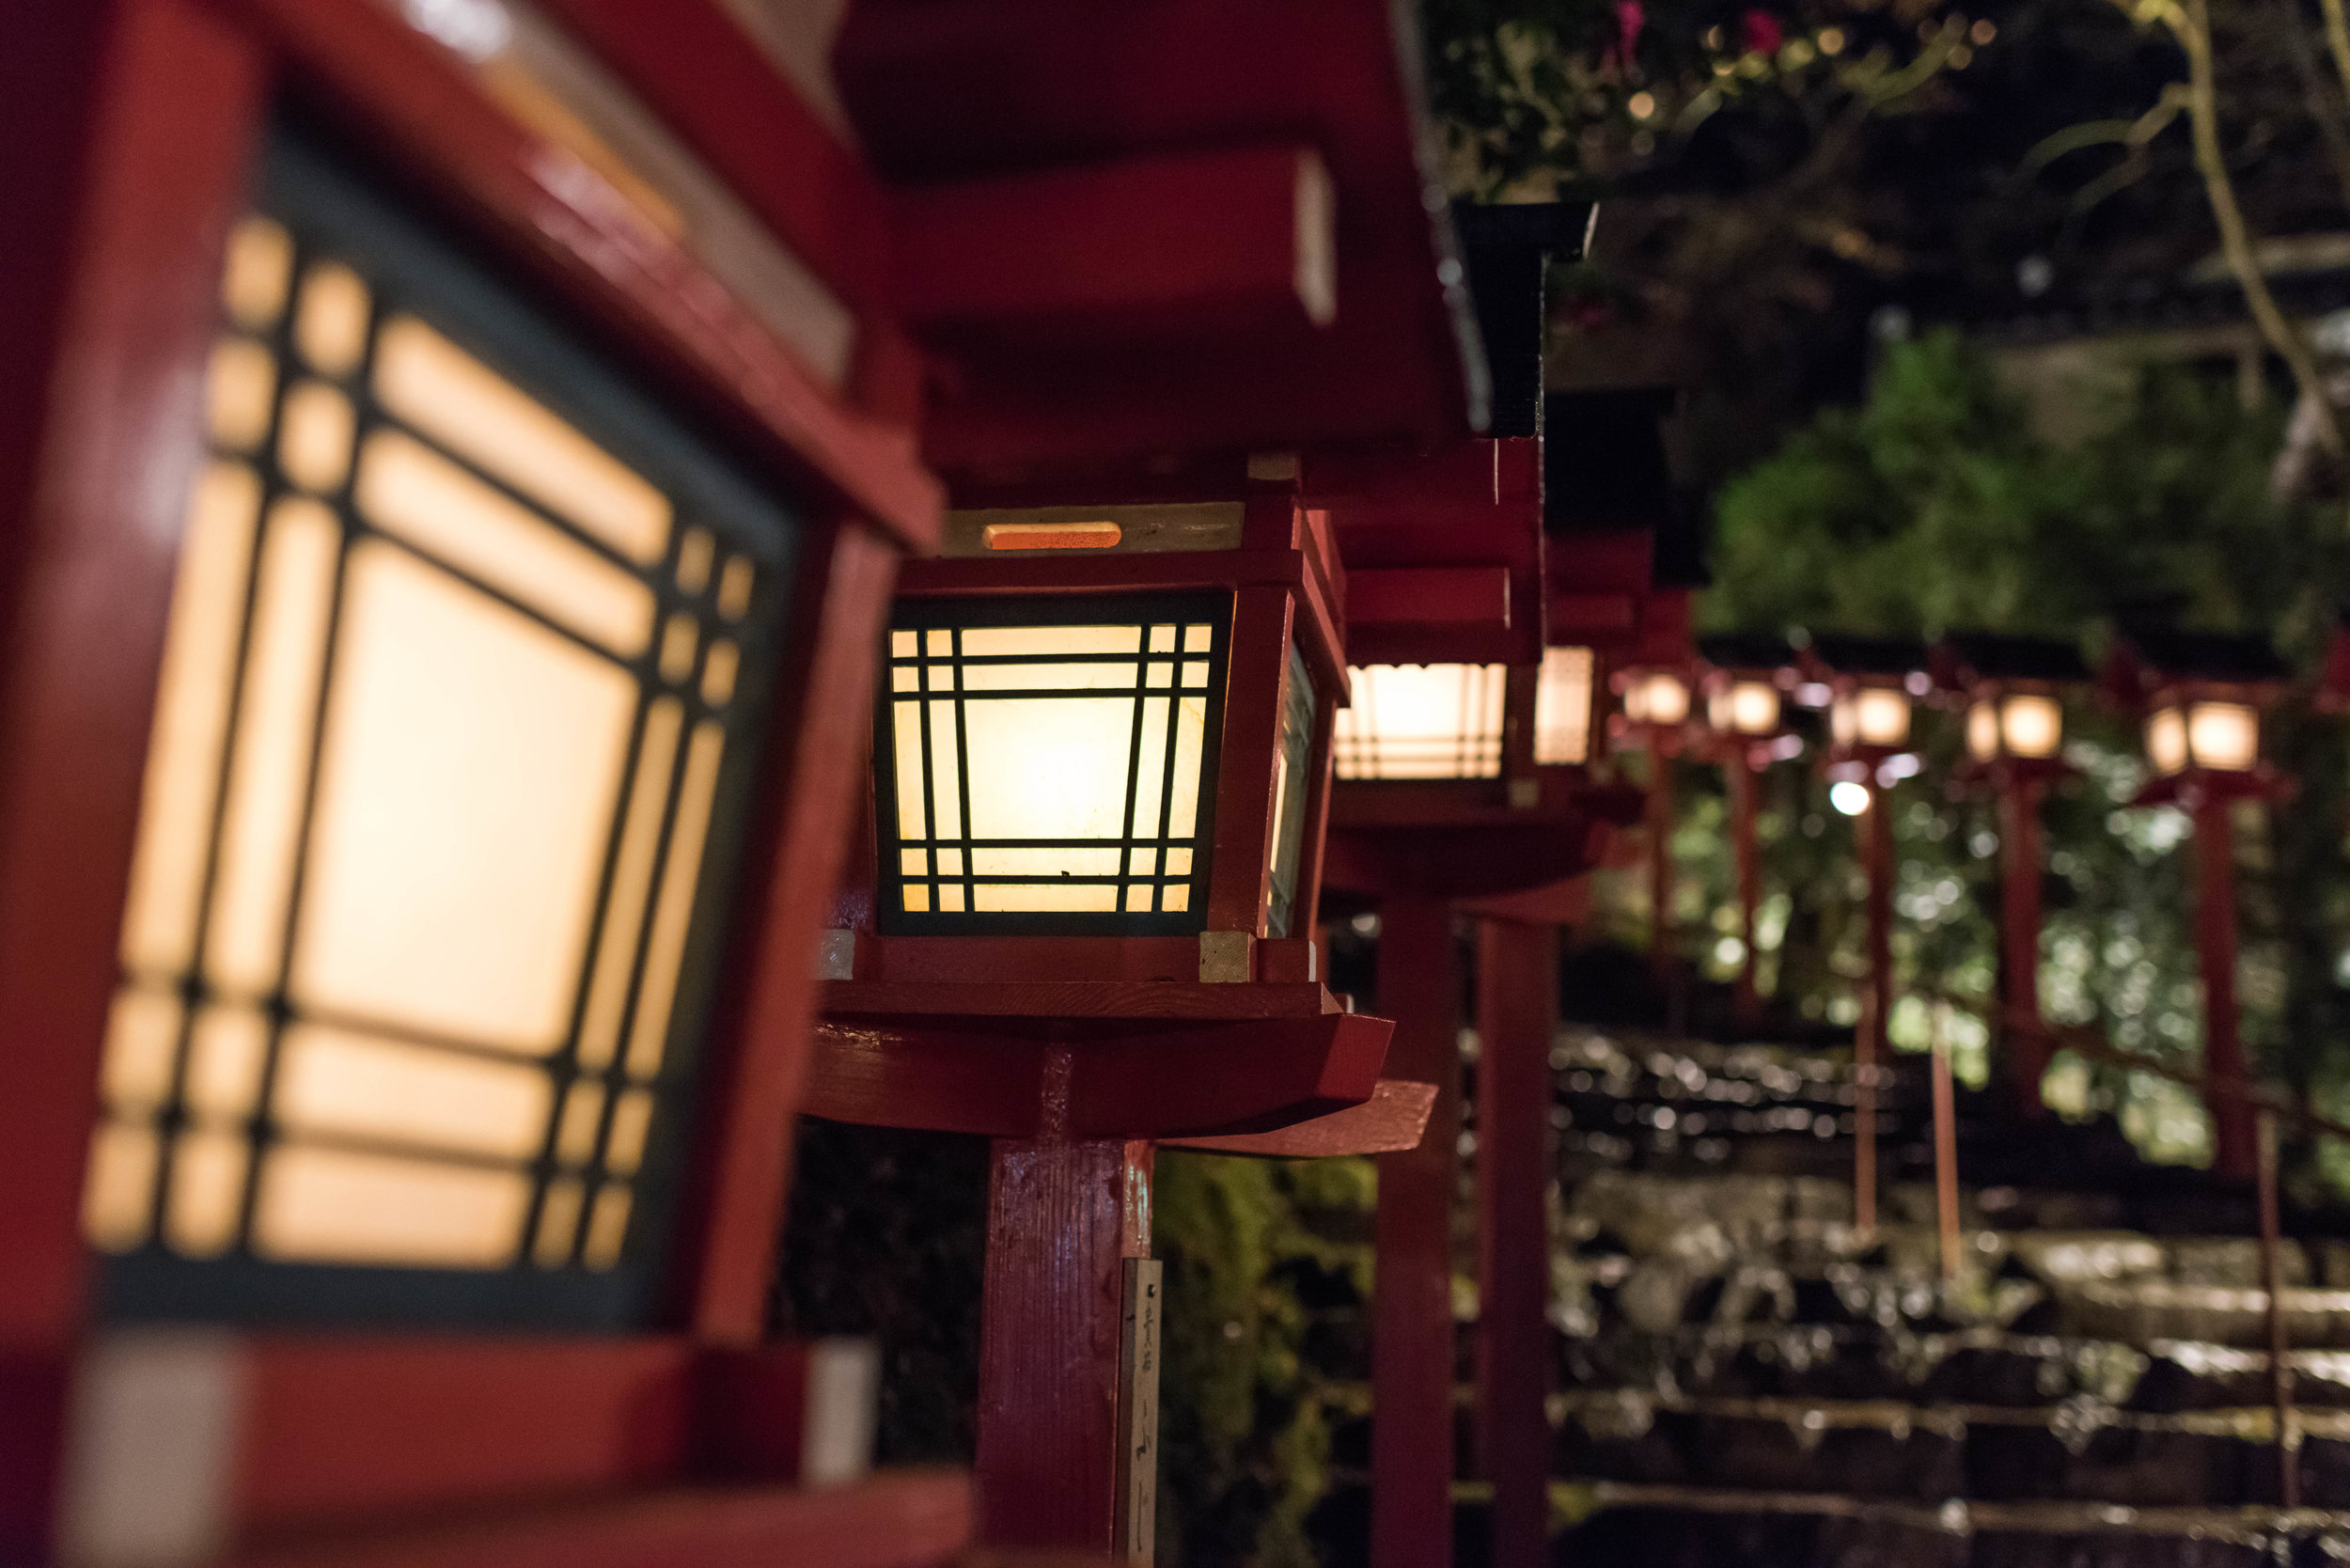 Kifune shrine, Kyoto, Japan (2017)